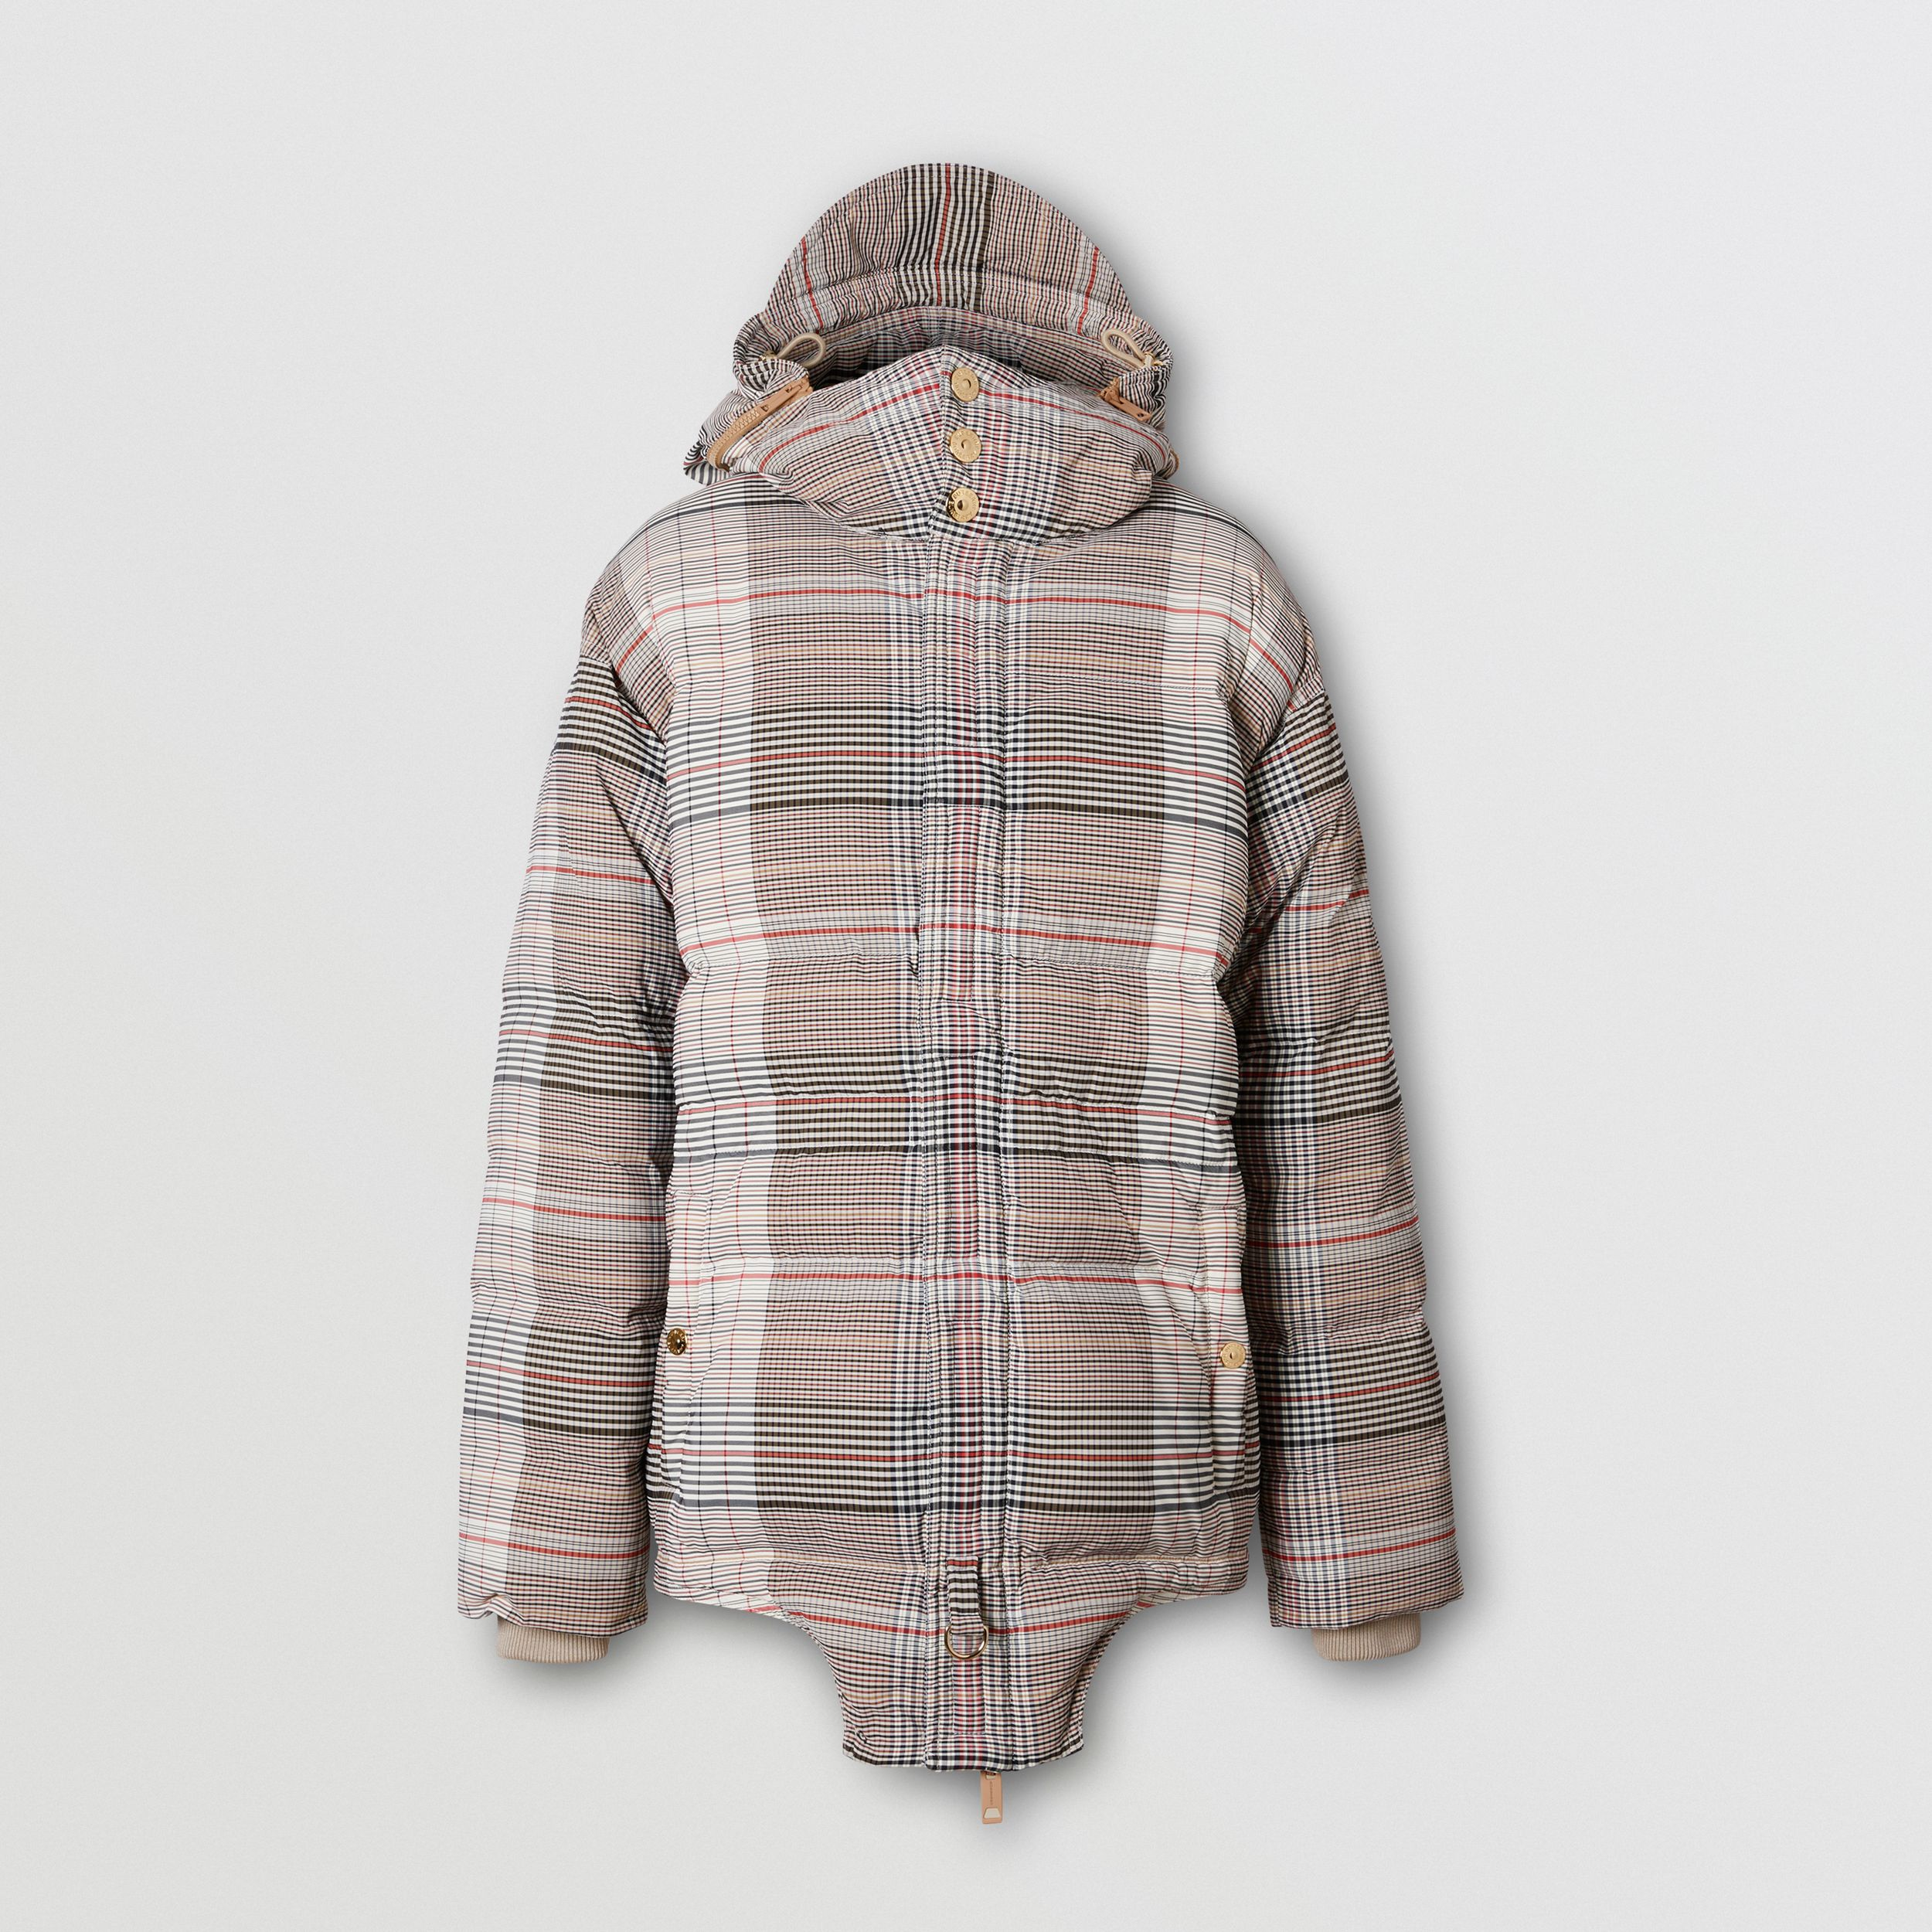 Cut-out Hem Check Nylon Twill Puffer Jacket in Beige - Men | Burberry - 4